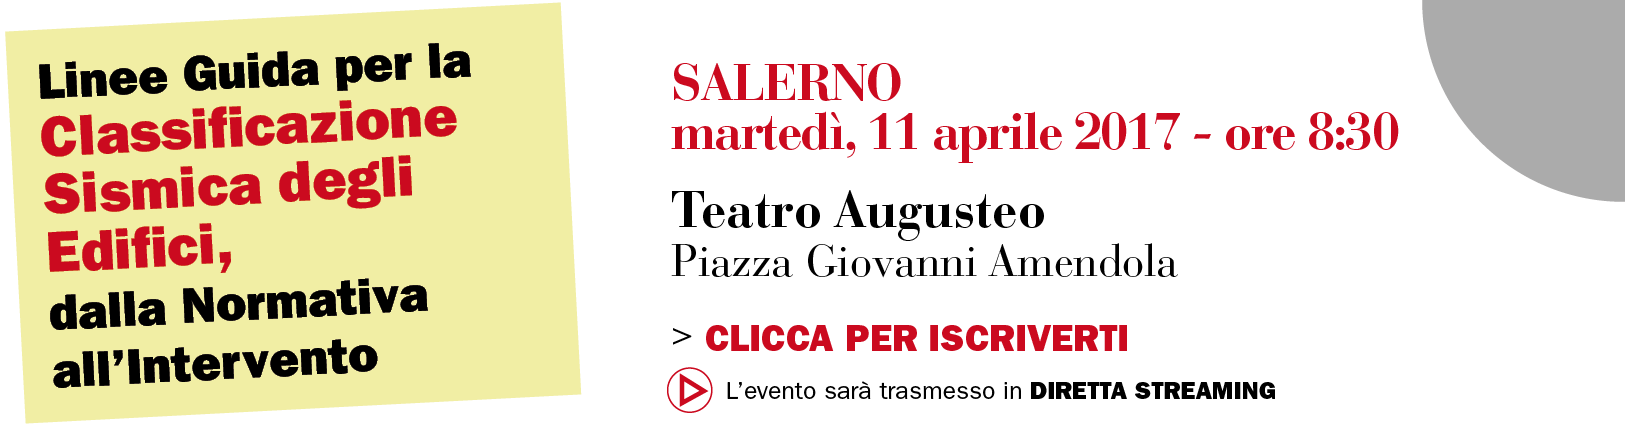 bh_Salerno_11apr2017.png